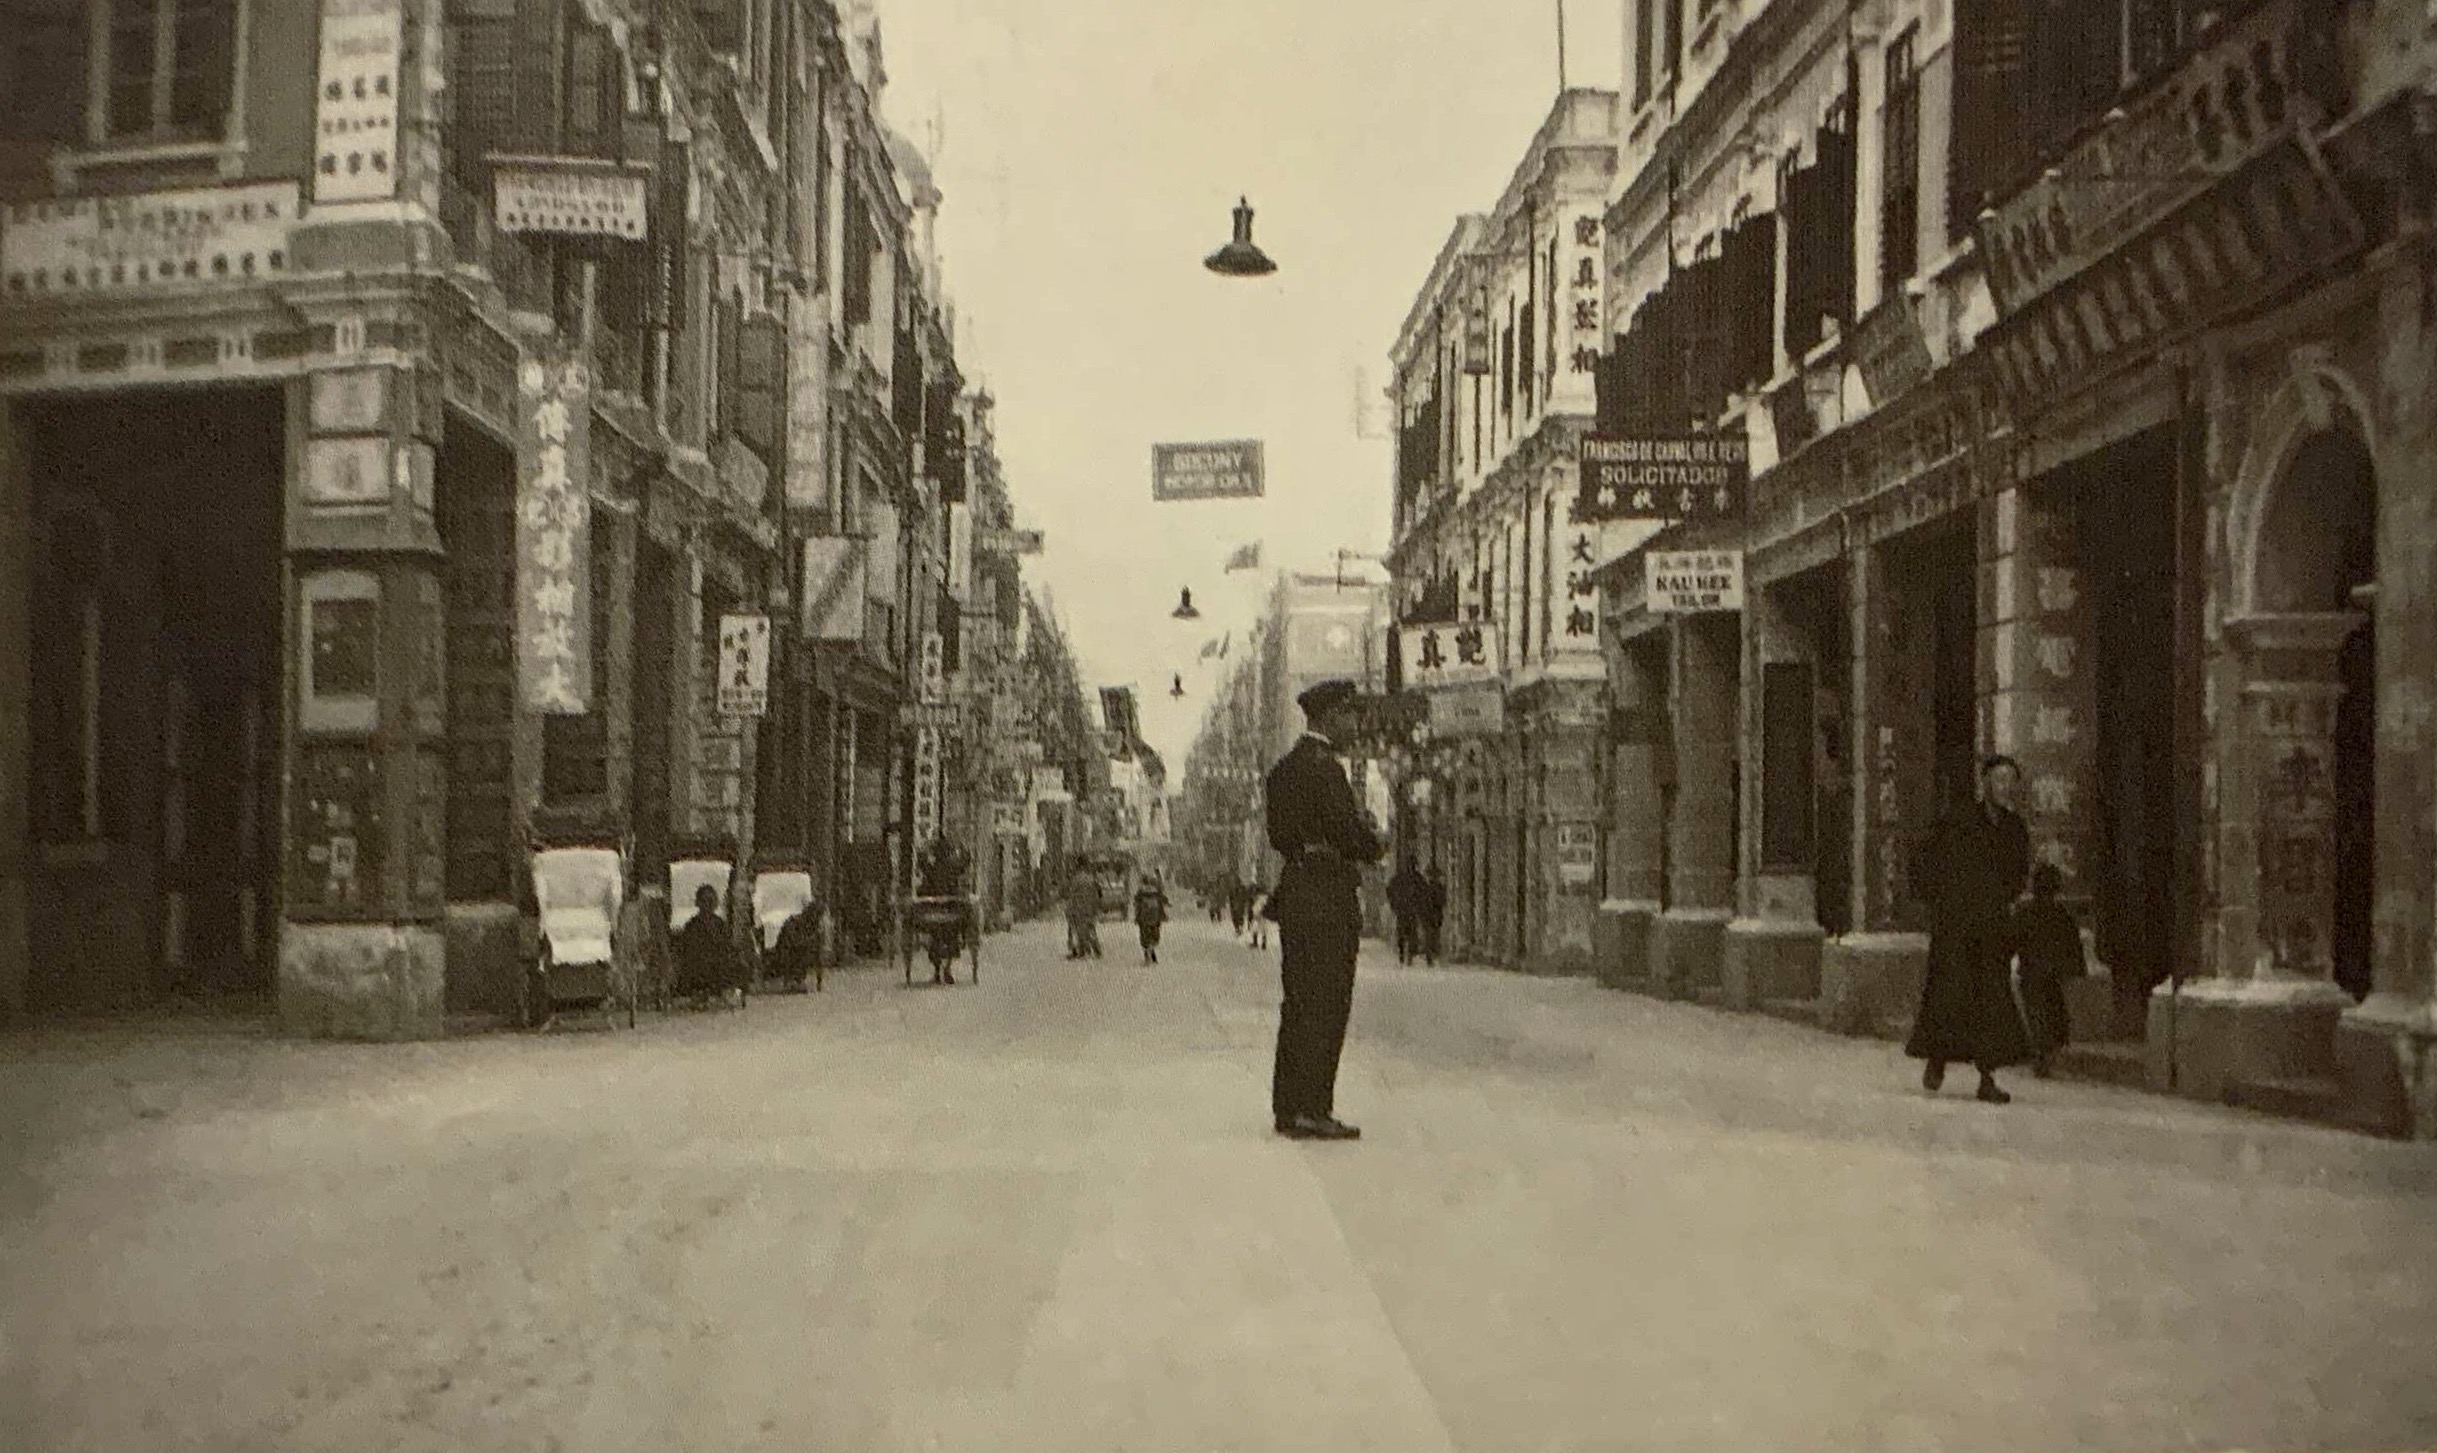 Avenida de Almeida Ribeiro circa 1925 source Macau Antique Postcards by Joao Loureiro 1997